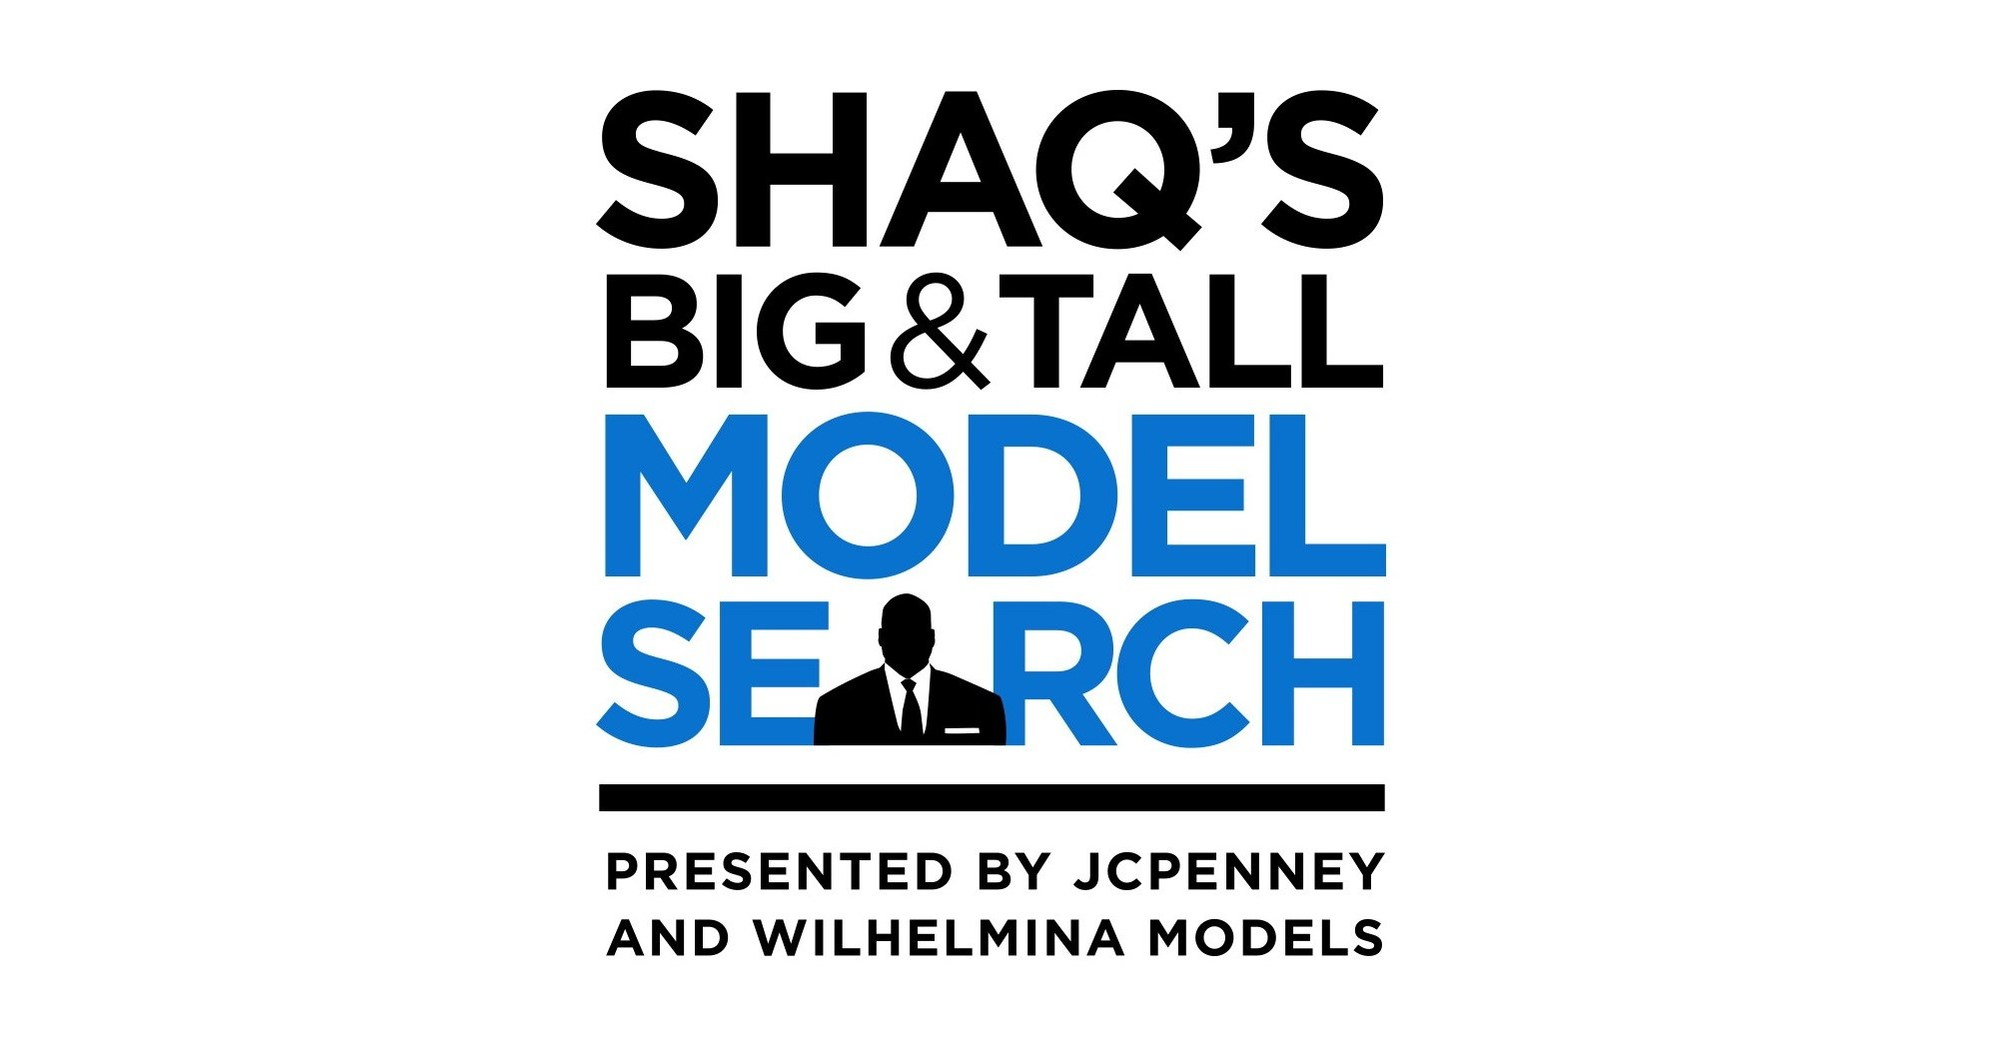 27a8984af Wilhelmina Models and JCPenney Team Up To Launch Shaquille O'Neal's Big &  Tall Model Search